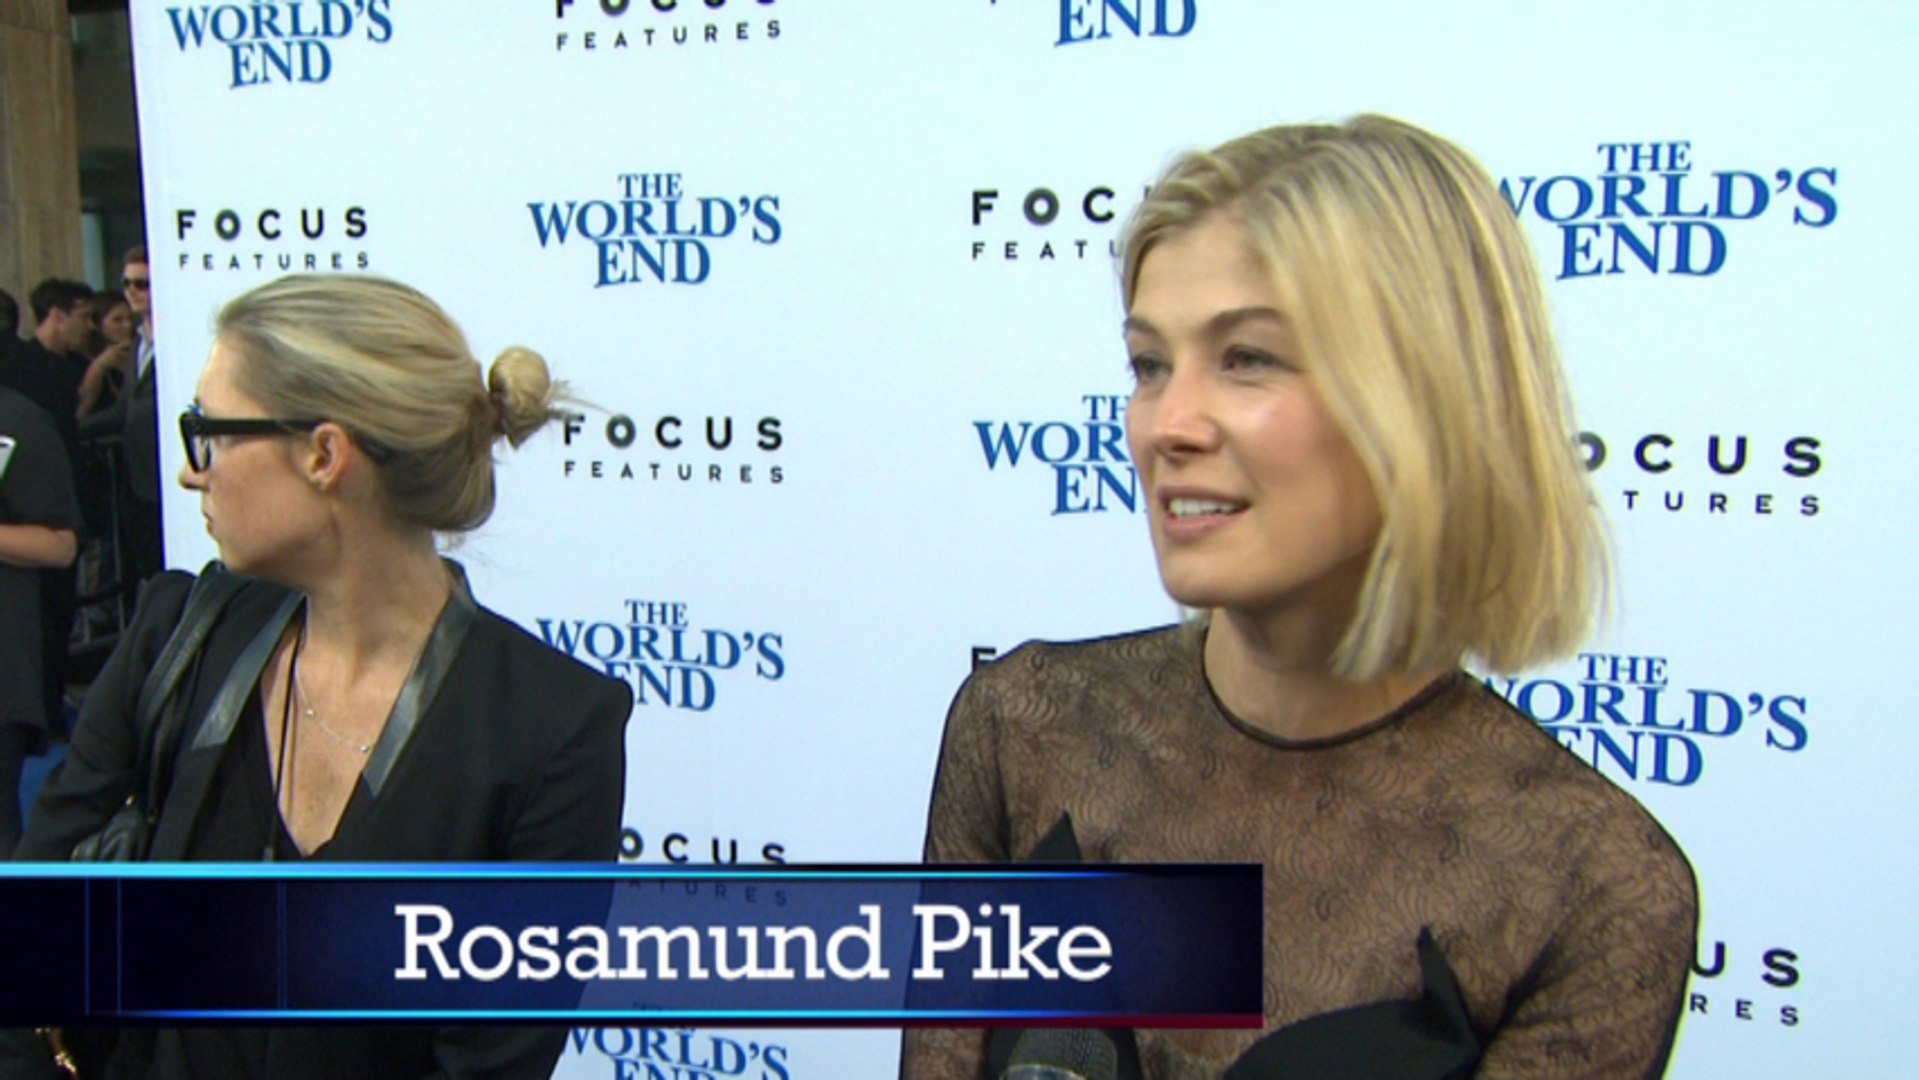 A Stunning Rosamund Pike, Jack Black And Ed Helms On The Red Carpet